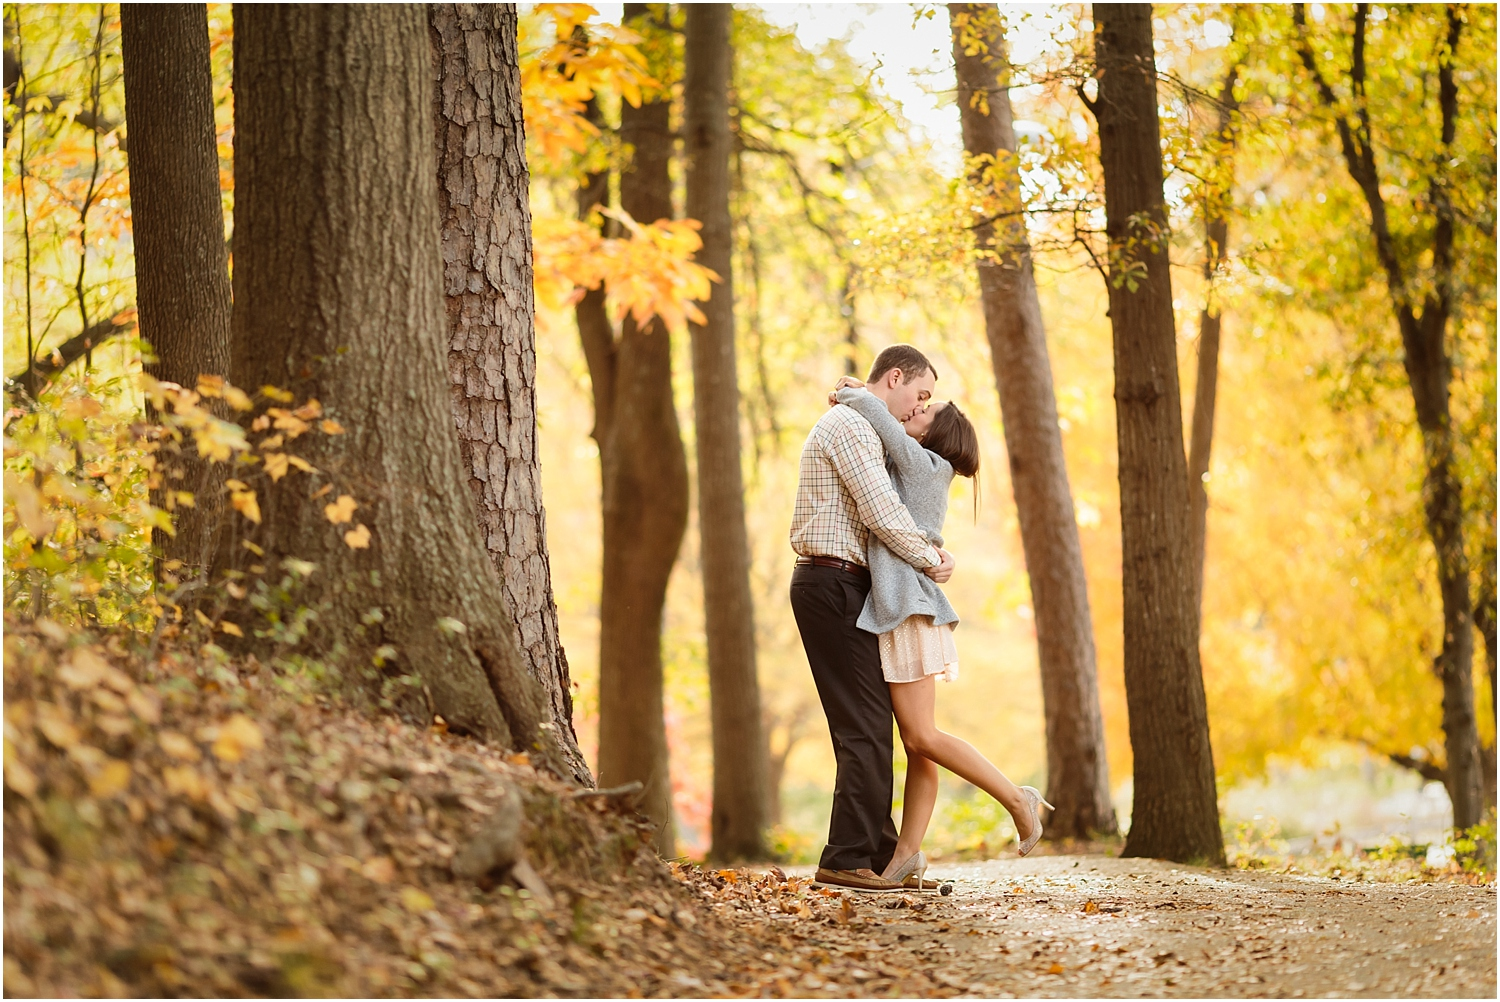 fall-engagement-session-downtown-greenville-photography-12_blog.jpg